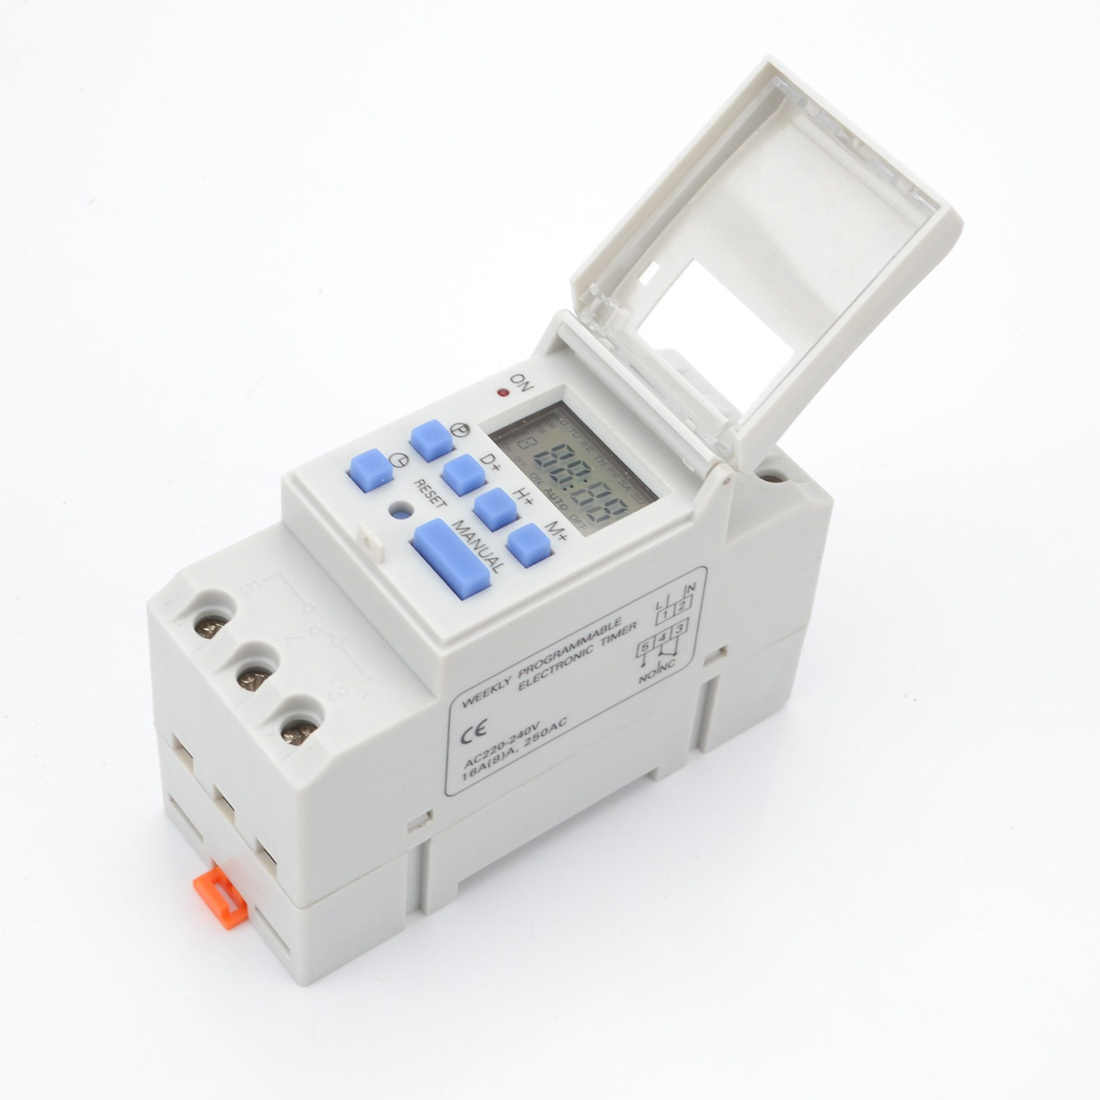 1pc Digital Programmable Timer Switch AC 220V / 110V DC 12V 16A Temporizador Din Rail Timer Switch brand new and high quality